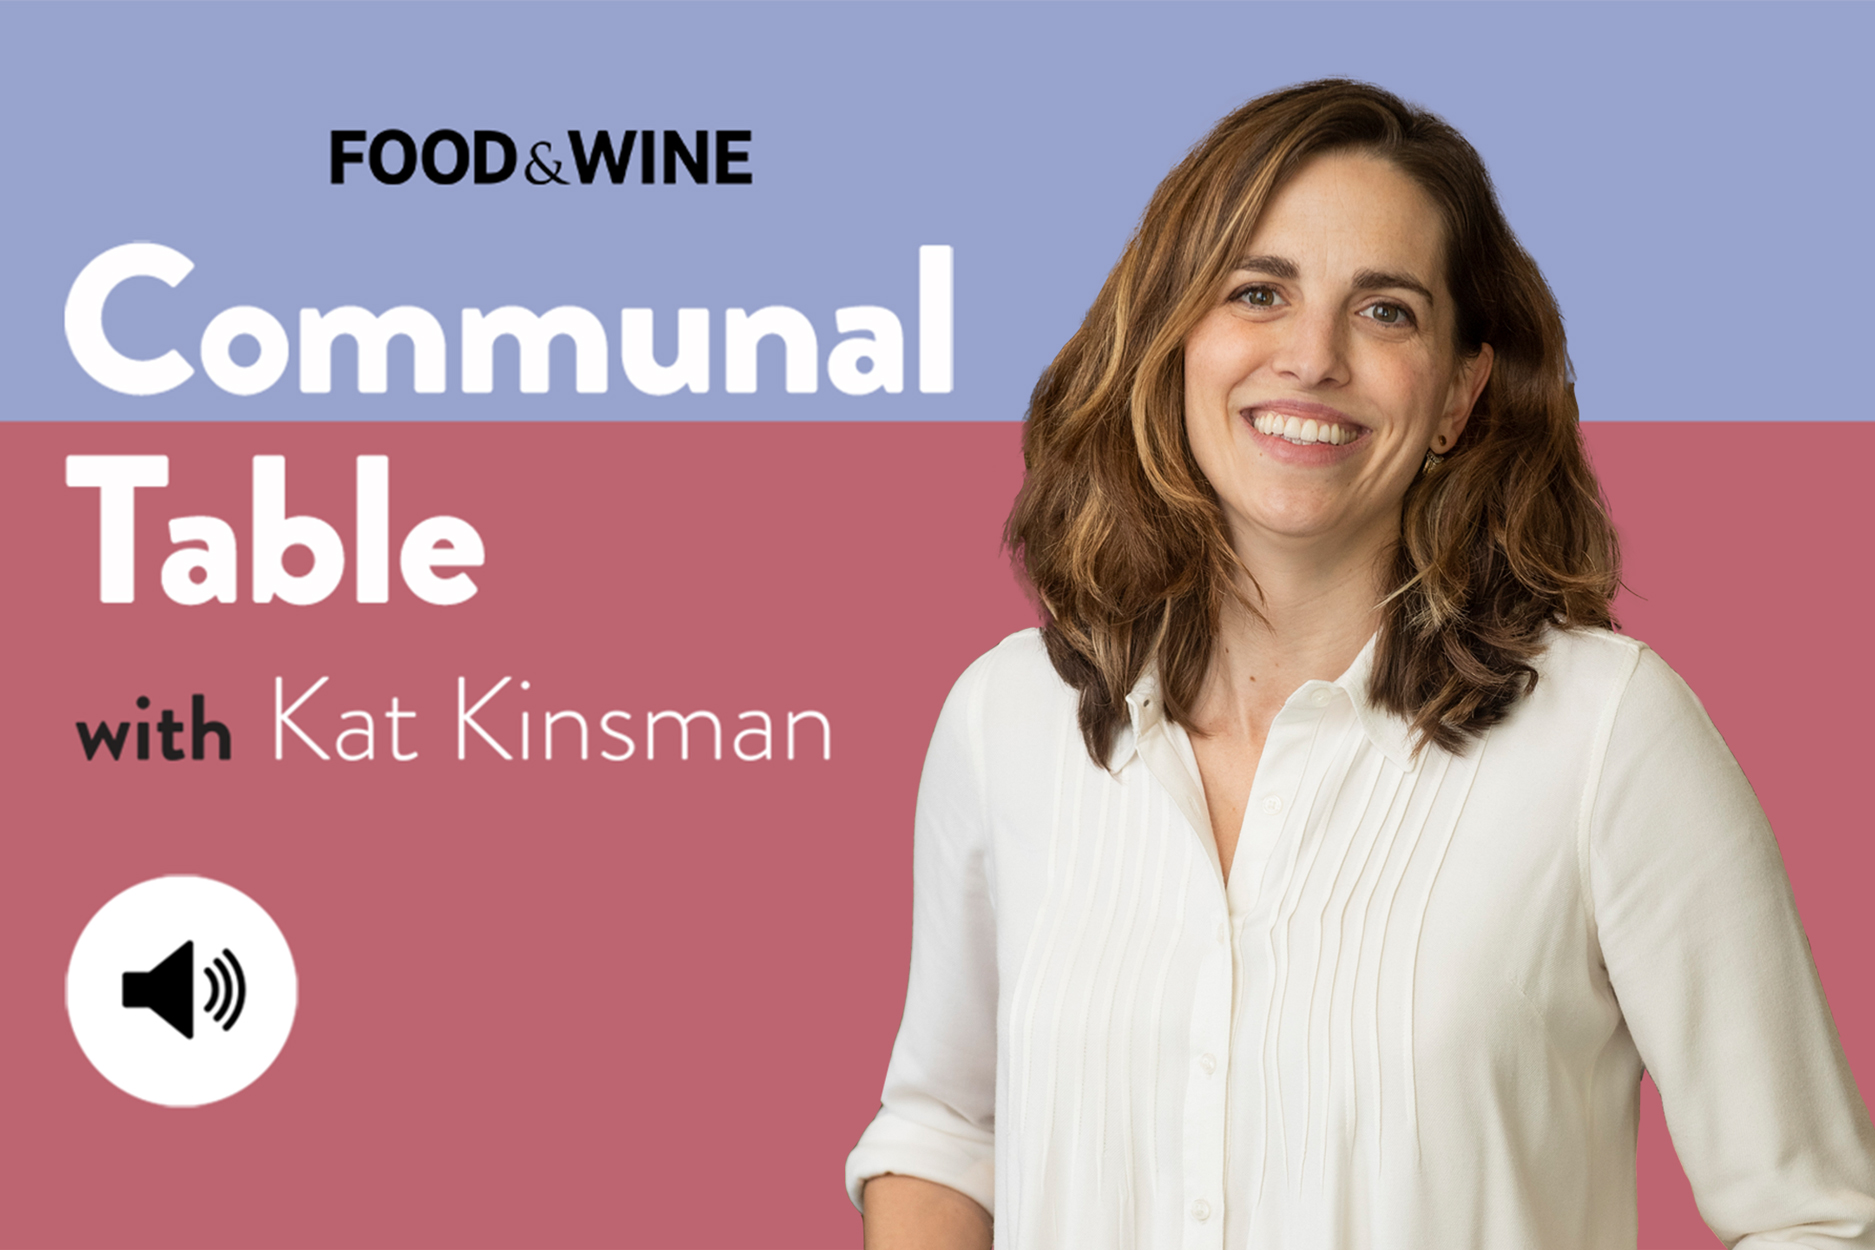 Communal Table with Kat Kinsman featuring Katie Button